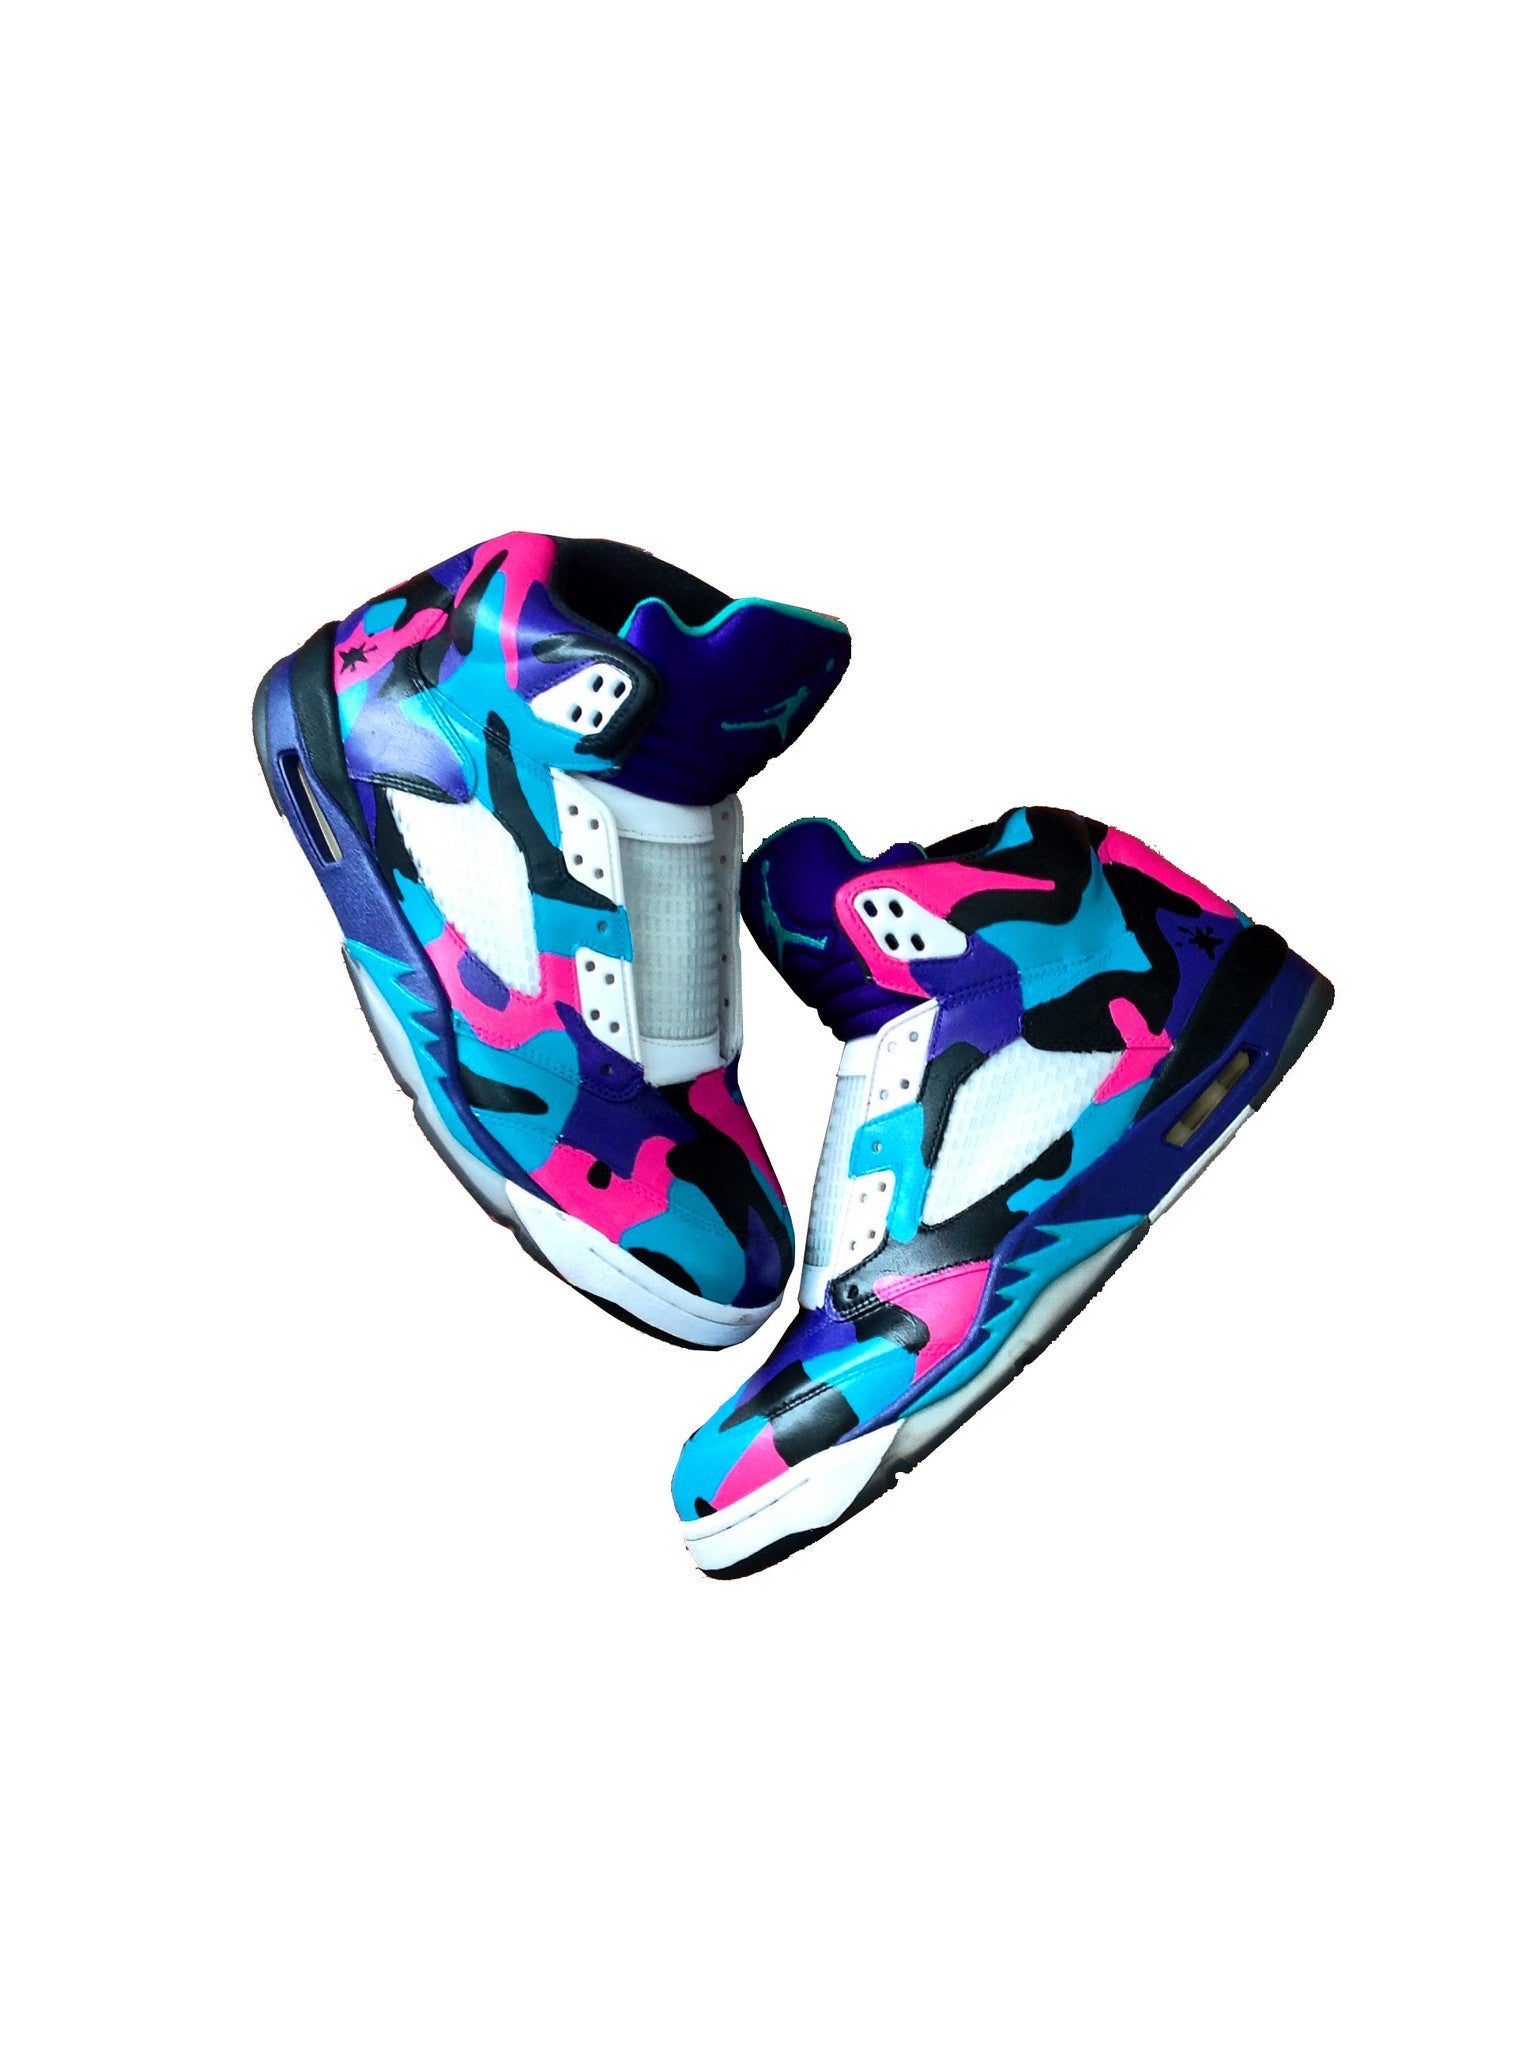 South Beach Camo Jordan 5's - BYN Customs